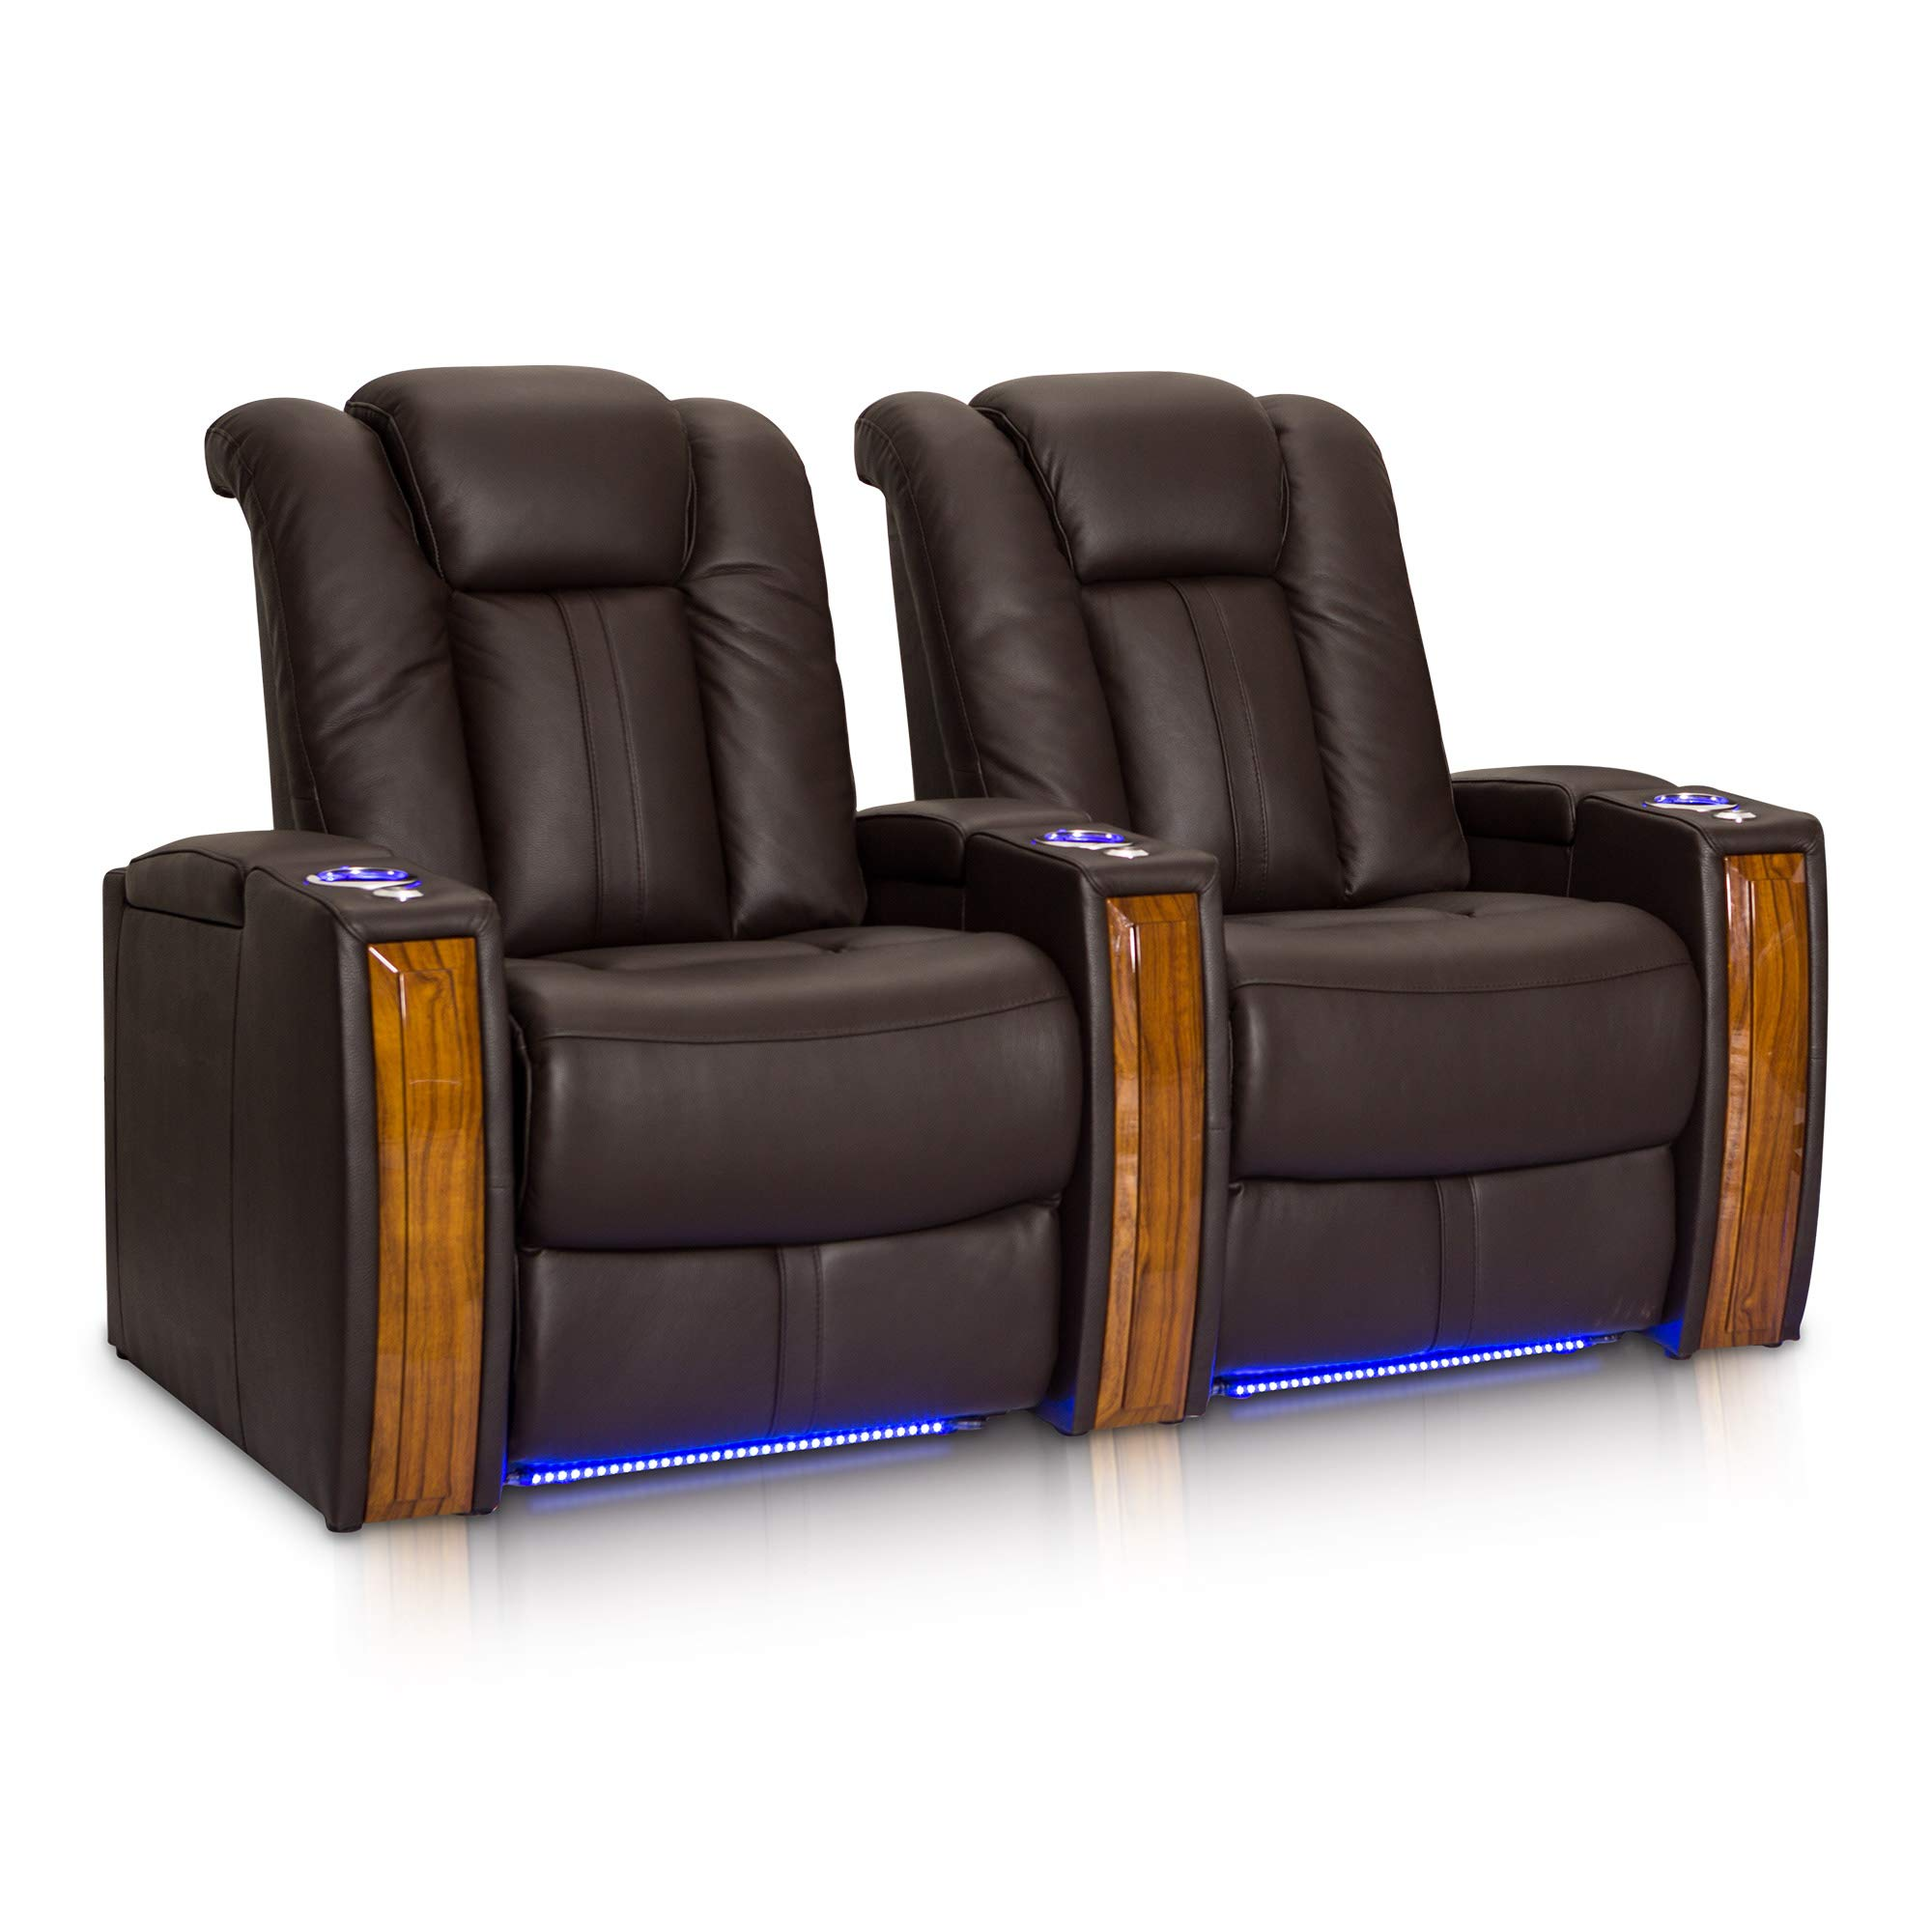 Seatcraft Monaco Leather Power Recline Home Theater Seating Chairs Powered by SoundShaker (Row of 2, Brown) by Seatcraft